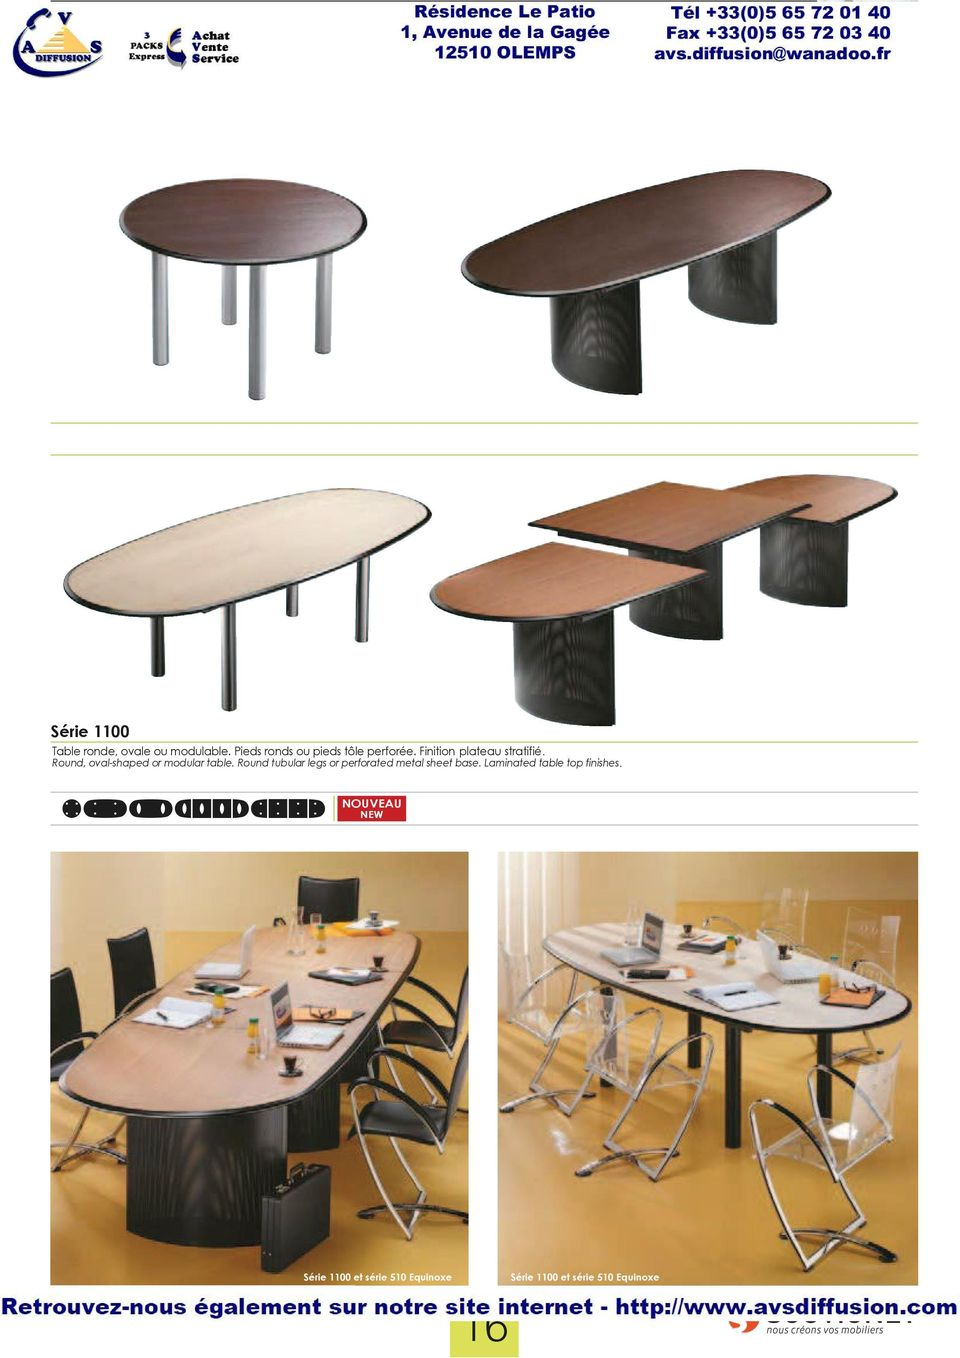 Round, oval-shaped or modular table. Round tubular legs or perforated metal sheet base.